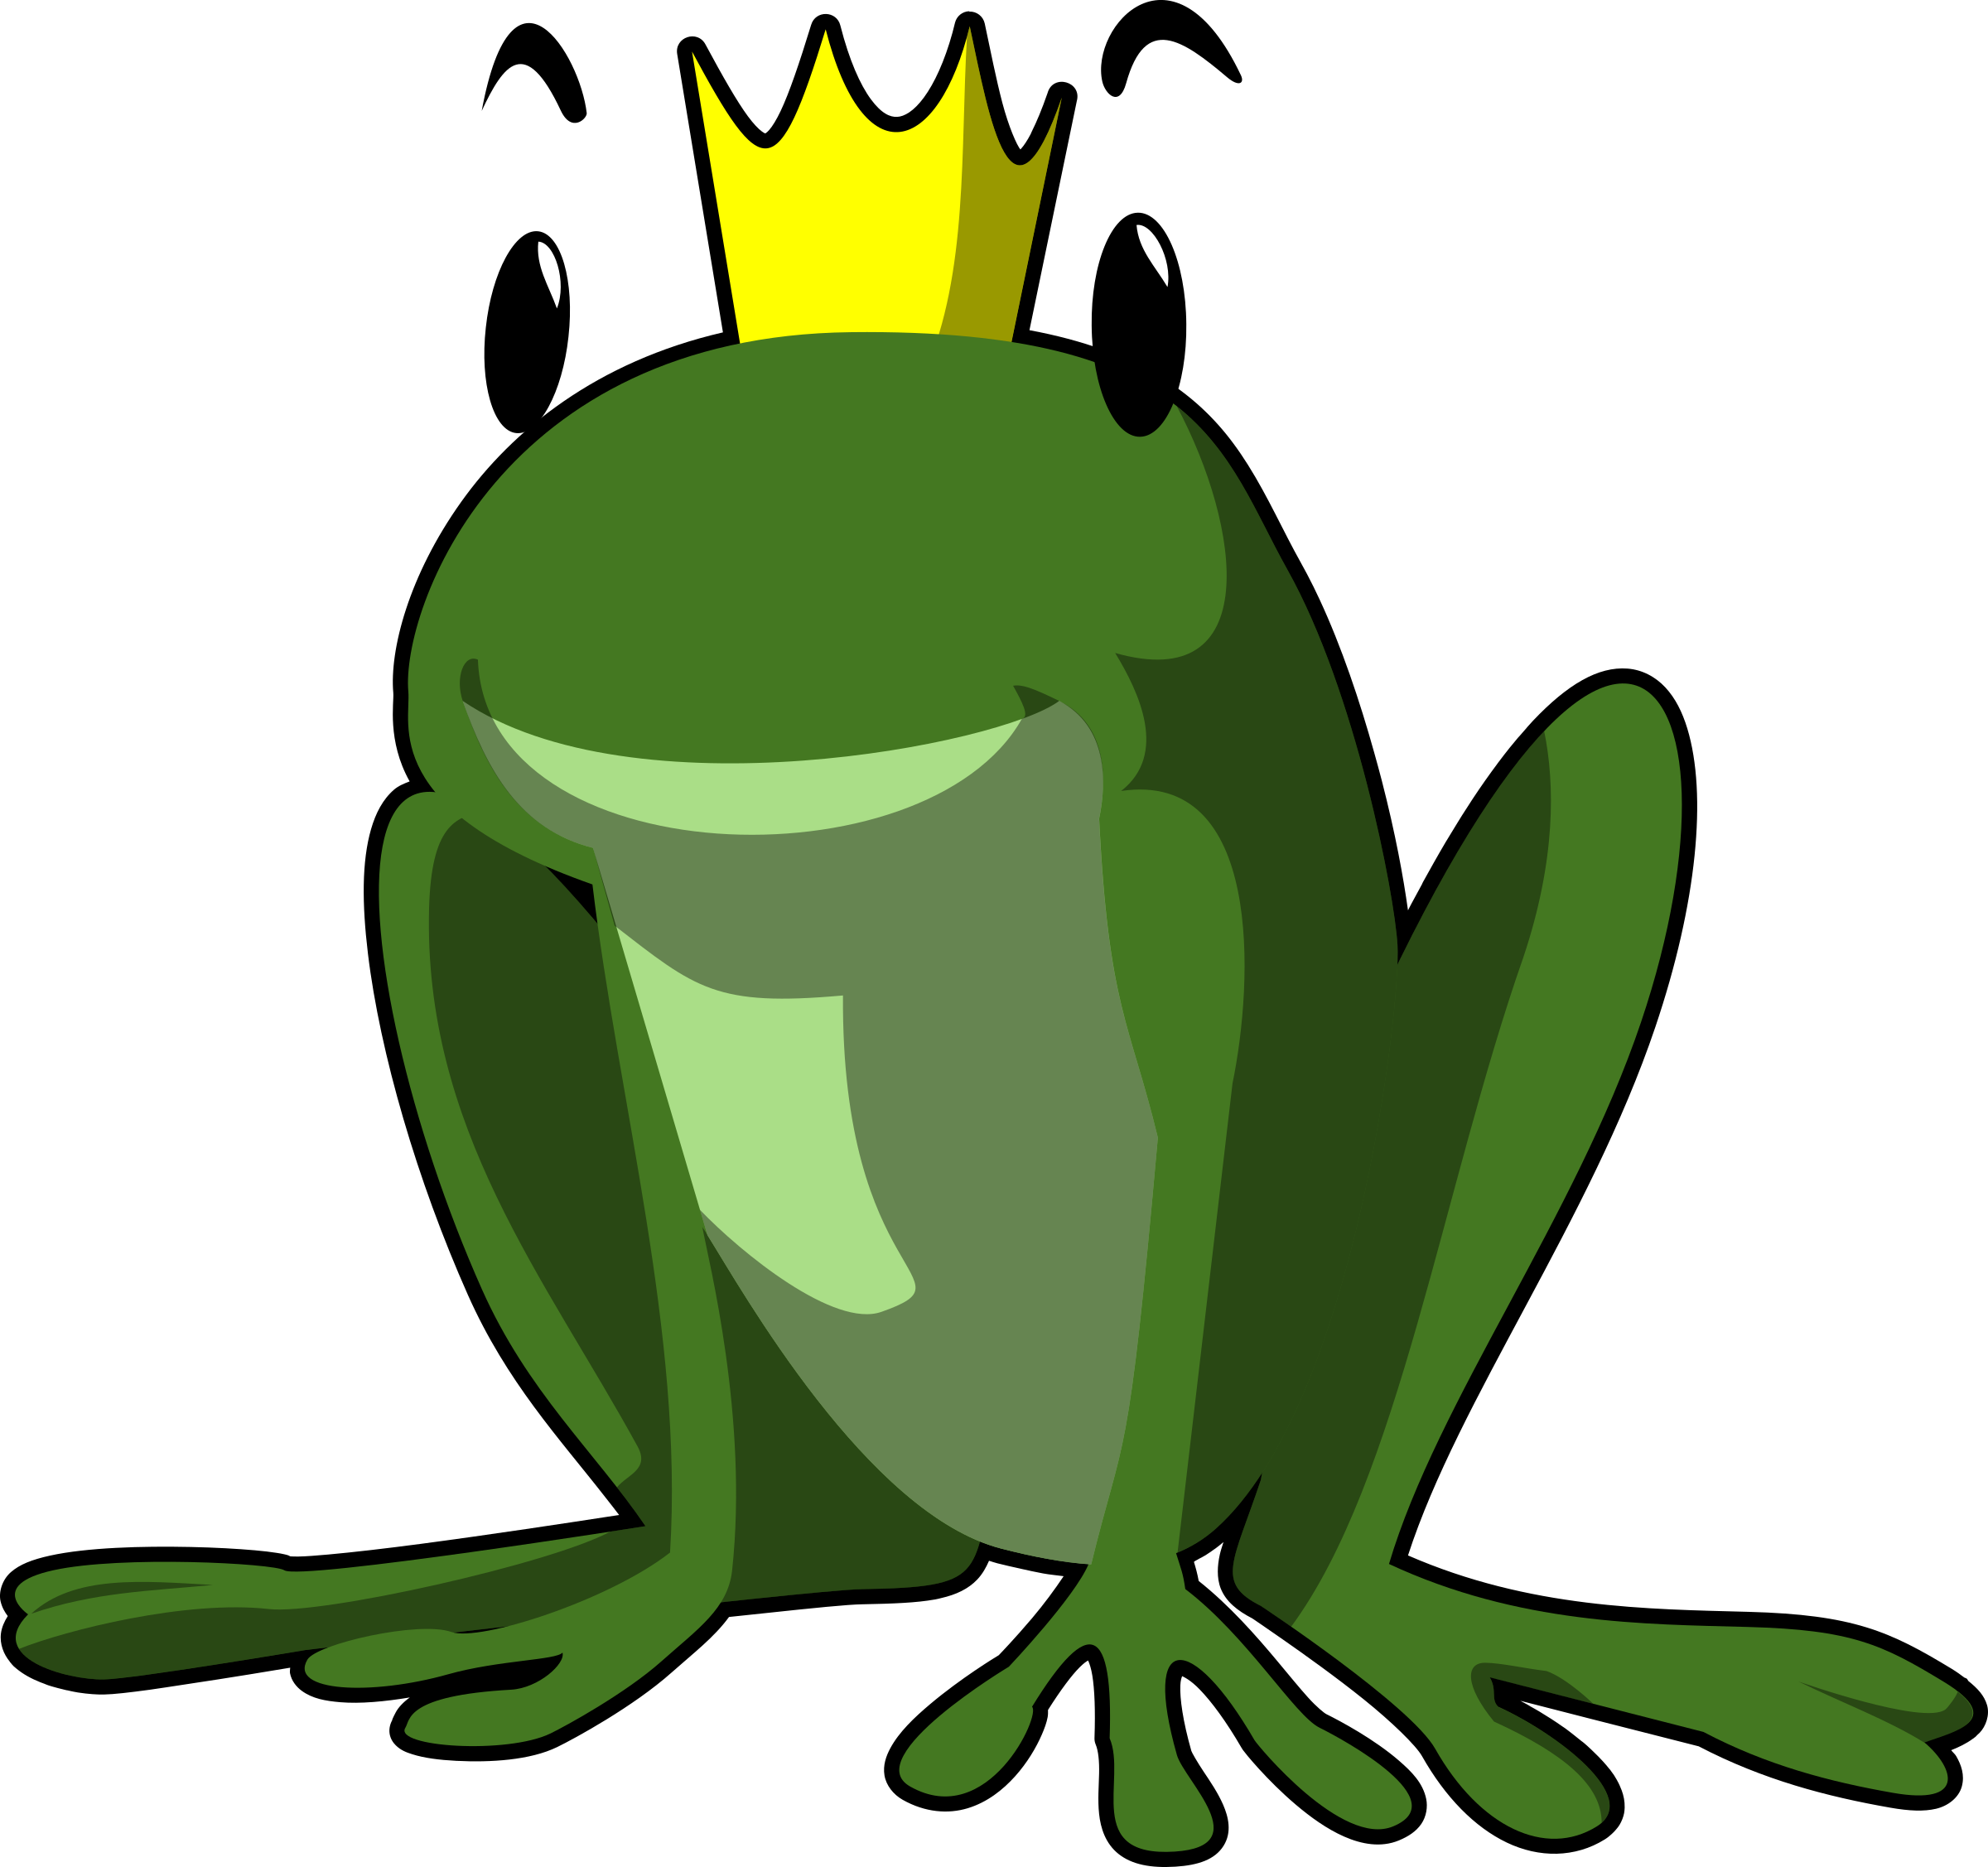 Frog in a crown clipart graphic free library Clipart - frog prince graphic free library